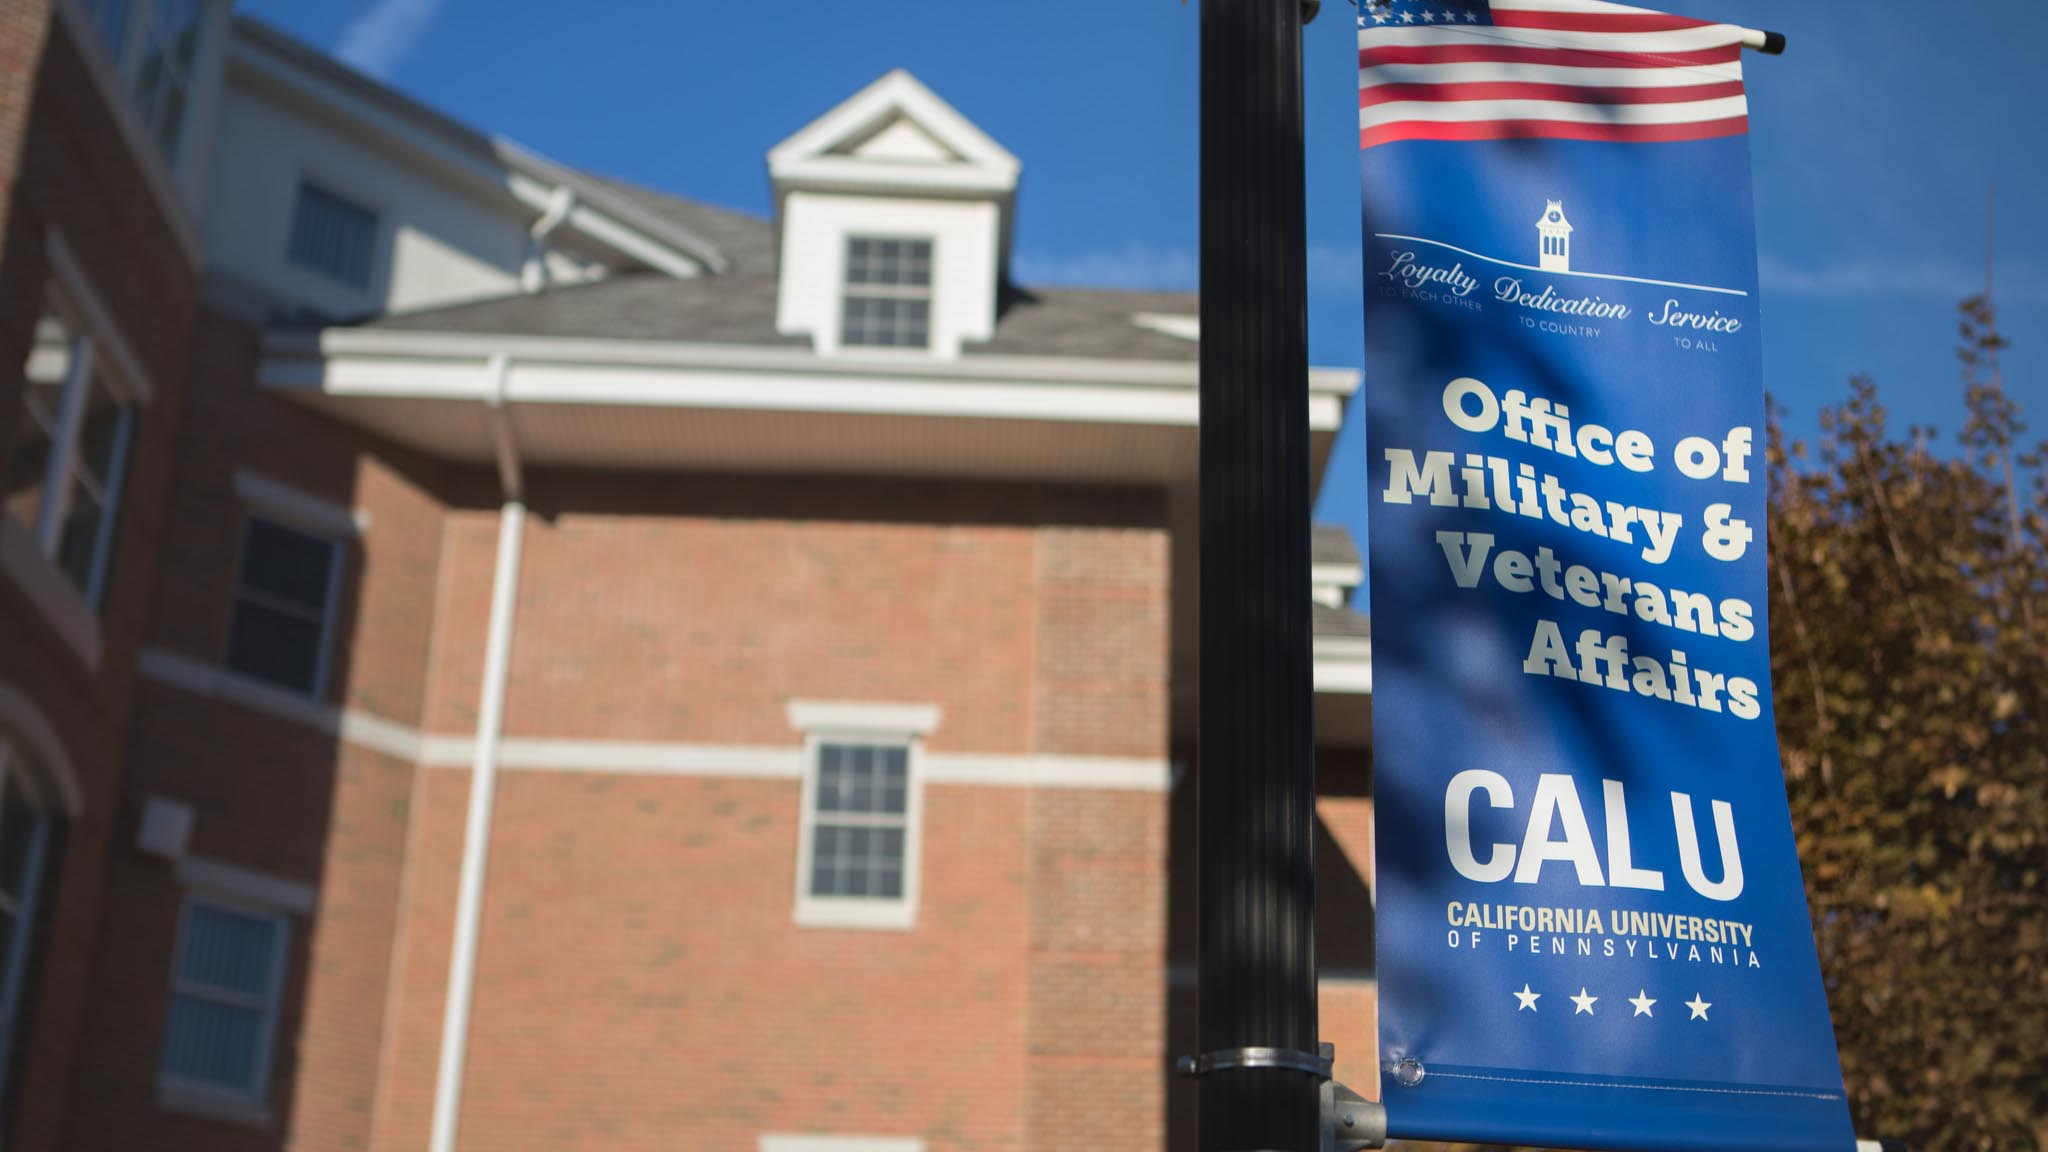 Office of Military and Veterans Affairs